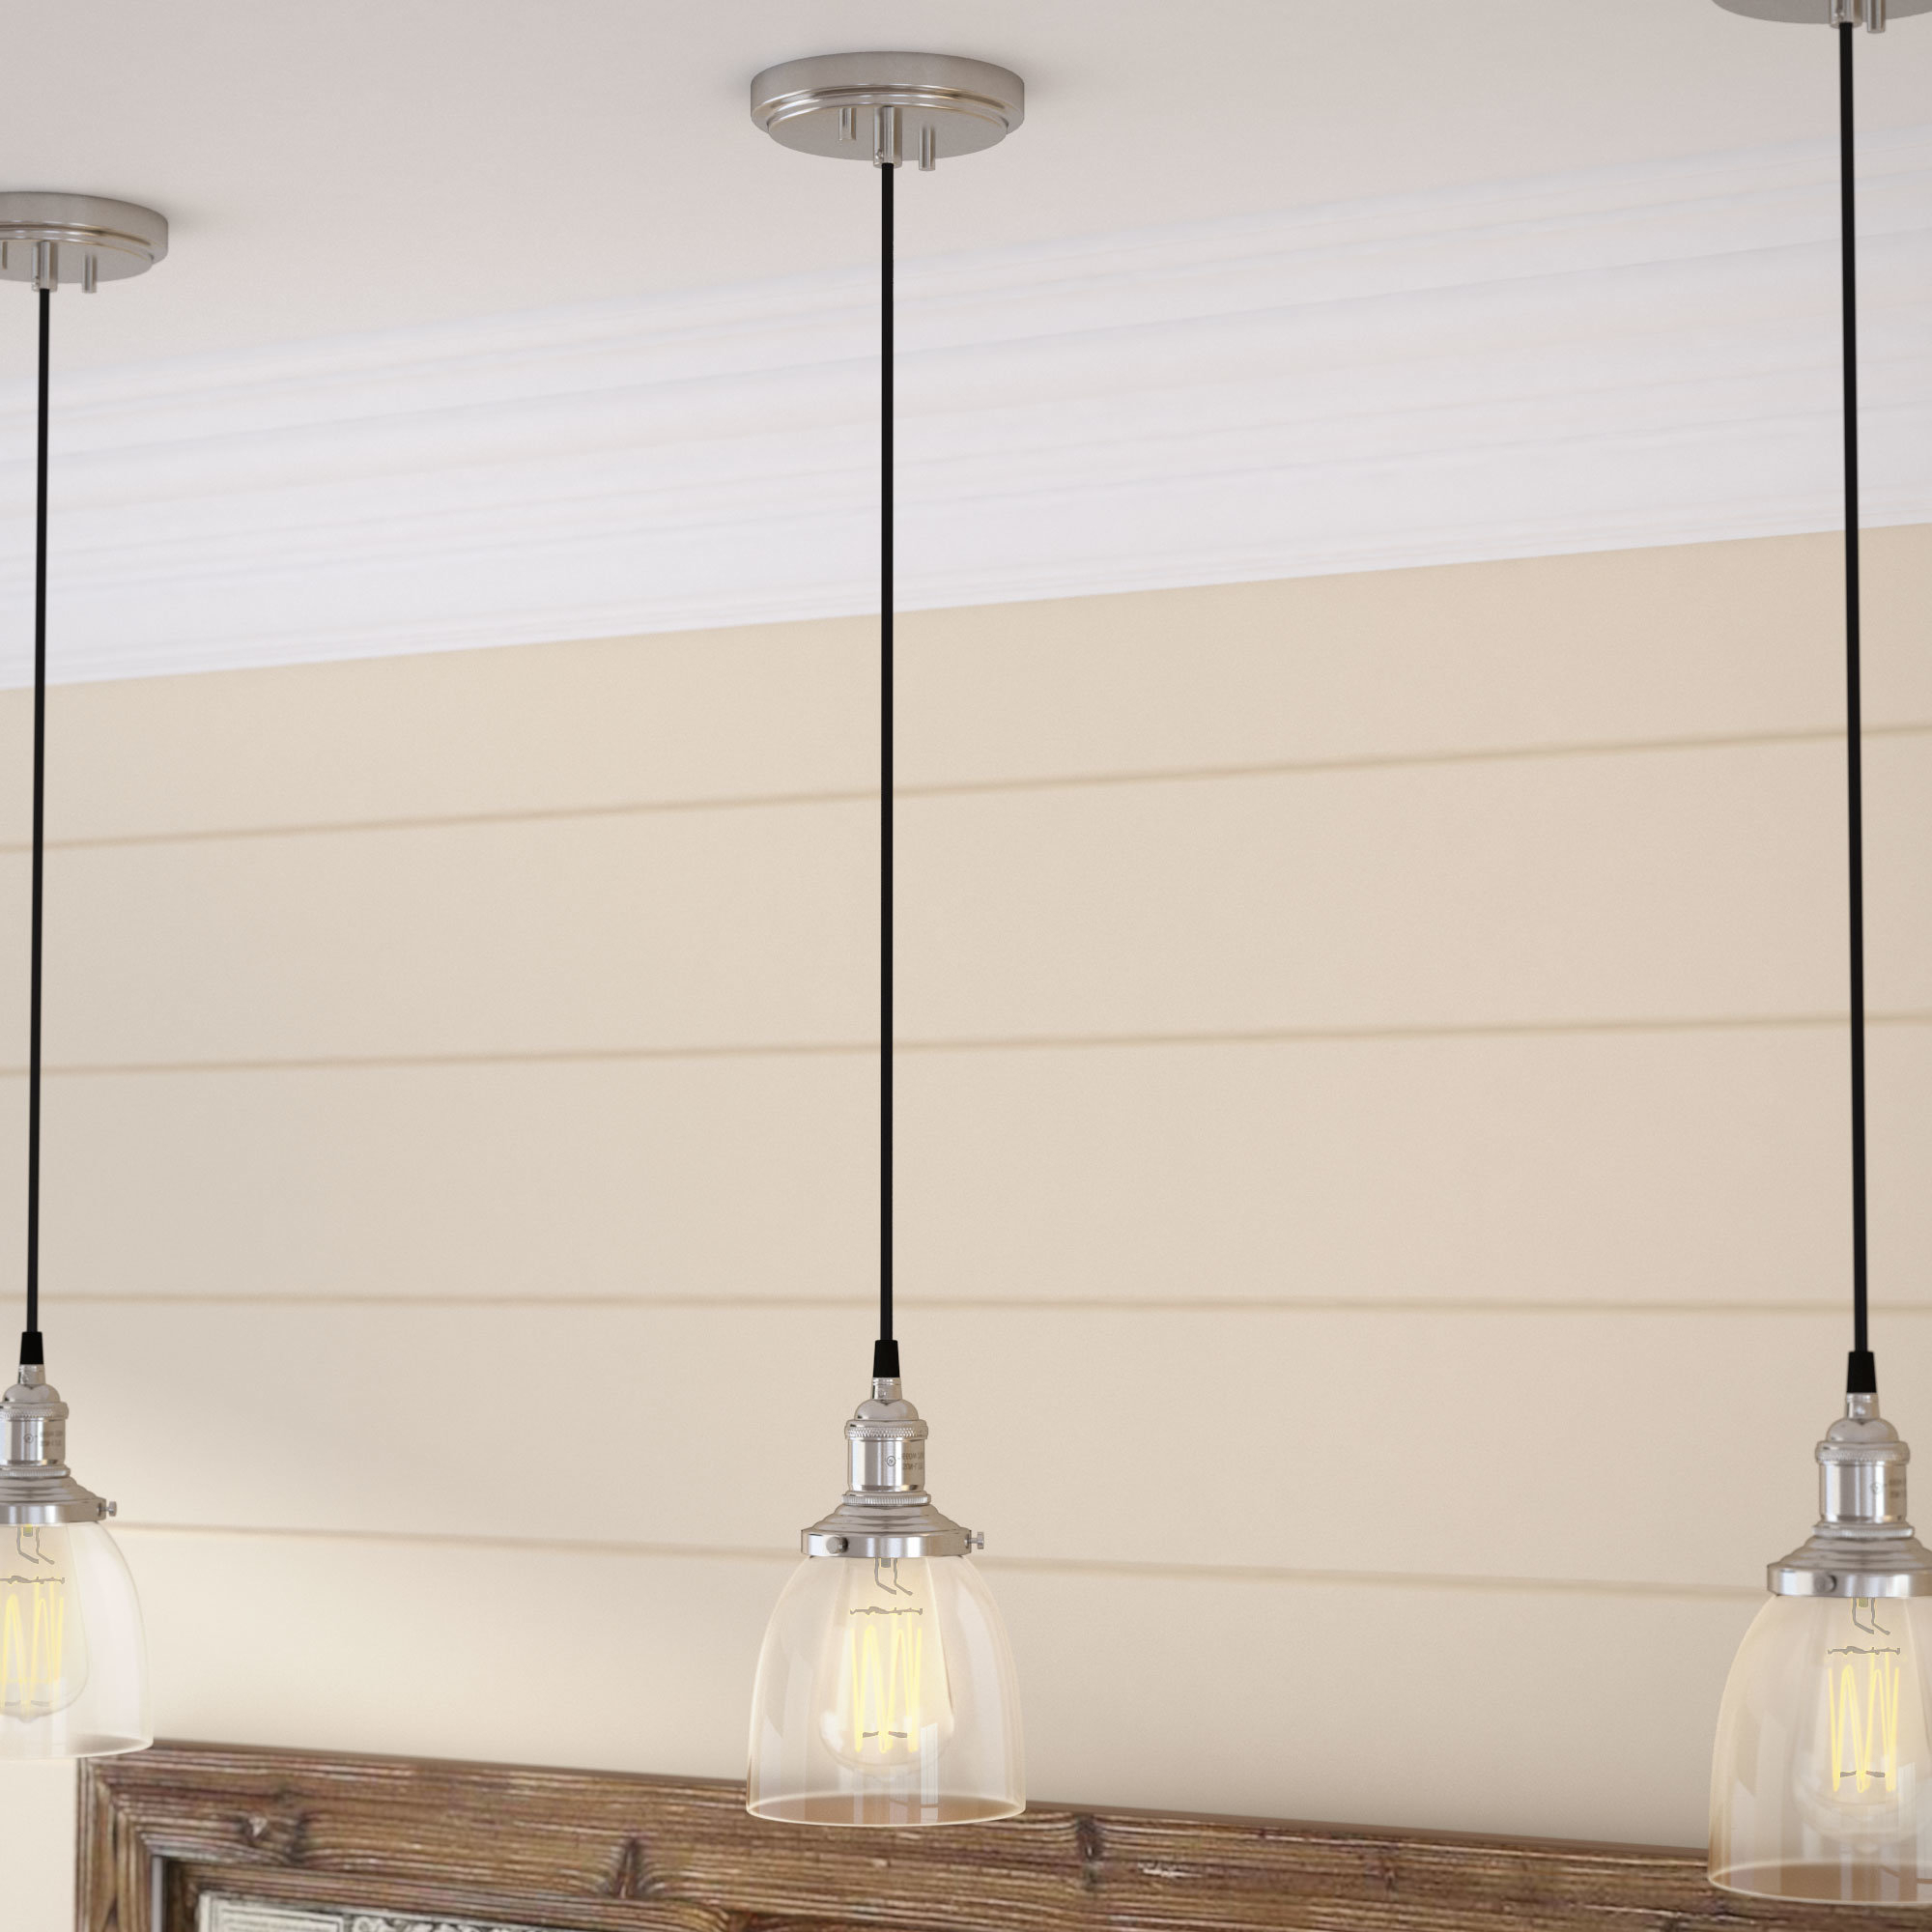 Finlayson Iron Gate 1 Light Single Bell Pendants Within Latest Sandy Springs 1 Light Single Bell Pendant (View 7 of 20)